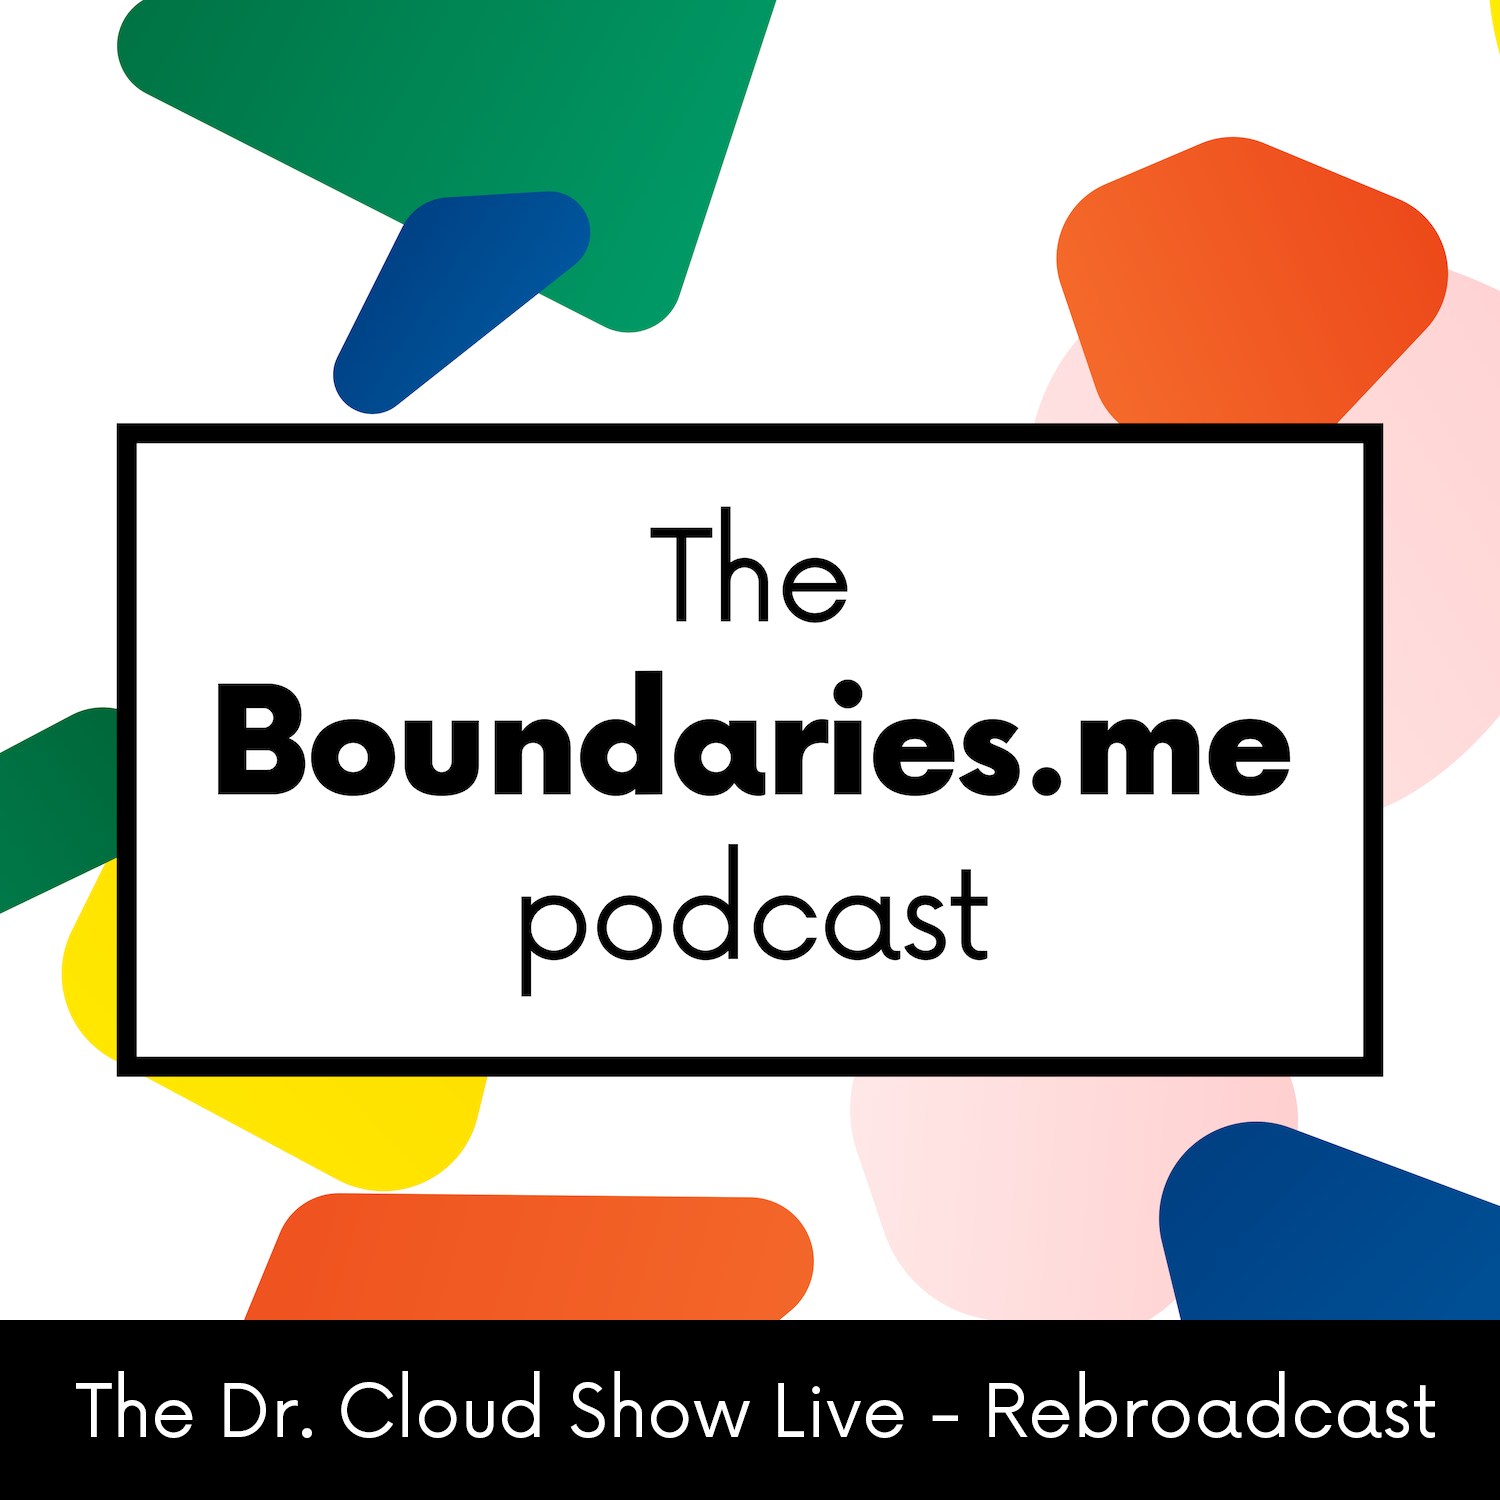 Episode 230 - The Dr. Cloud Show Live - The Divisiveness of Triangulation - 5-28-2021